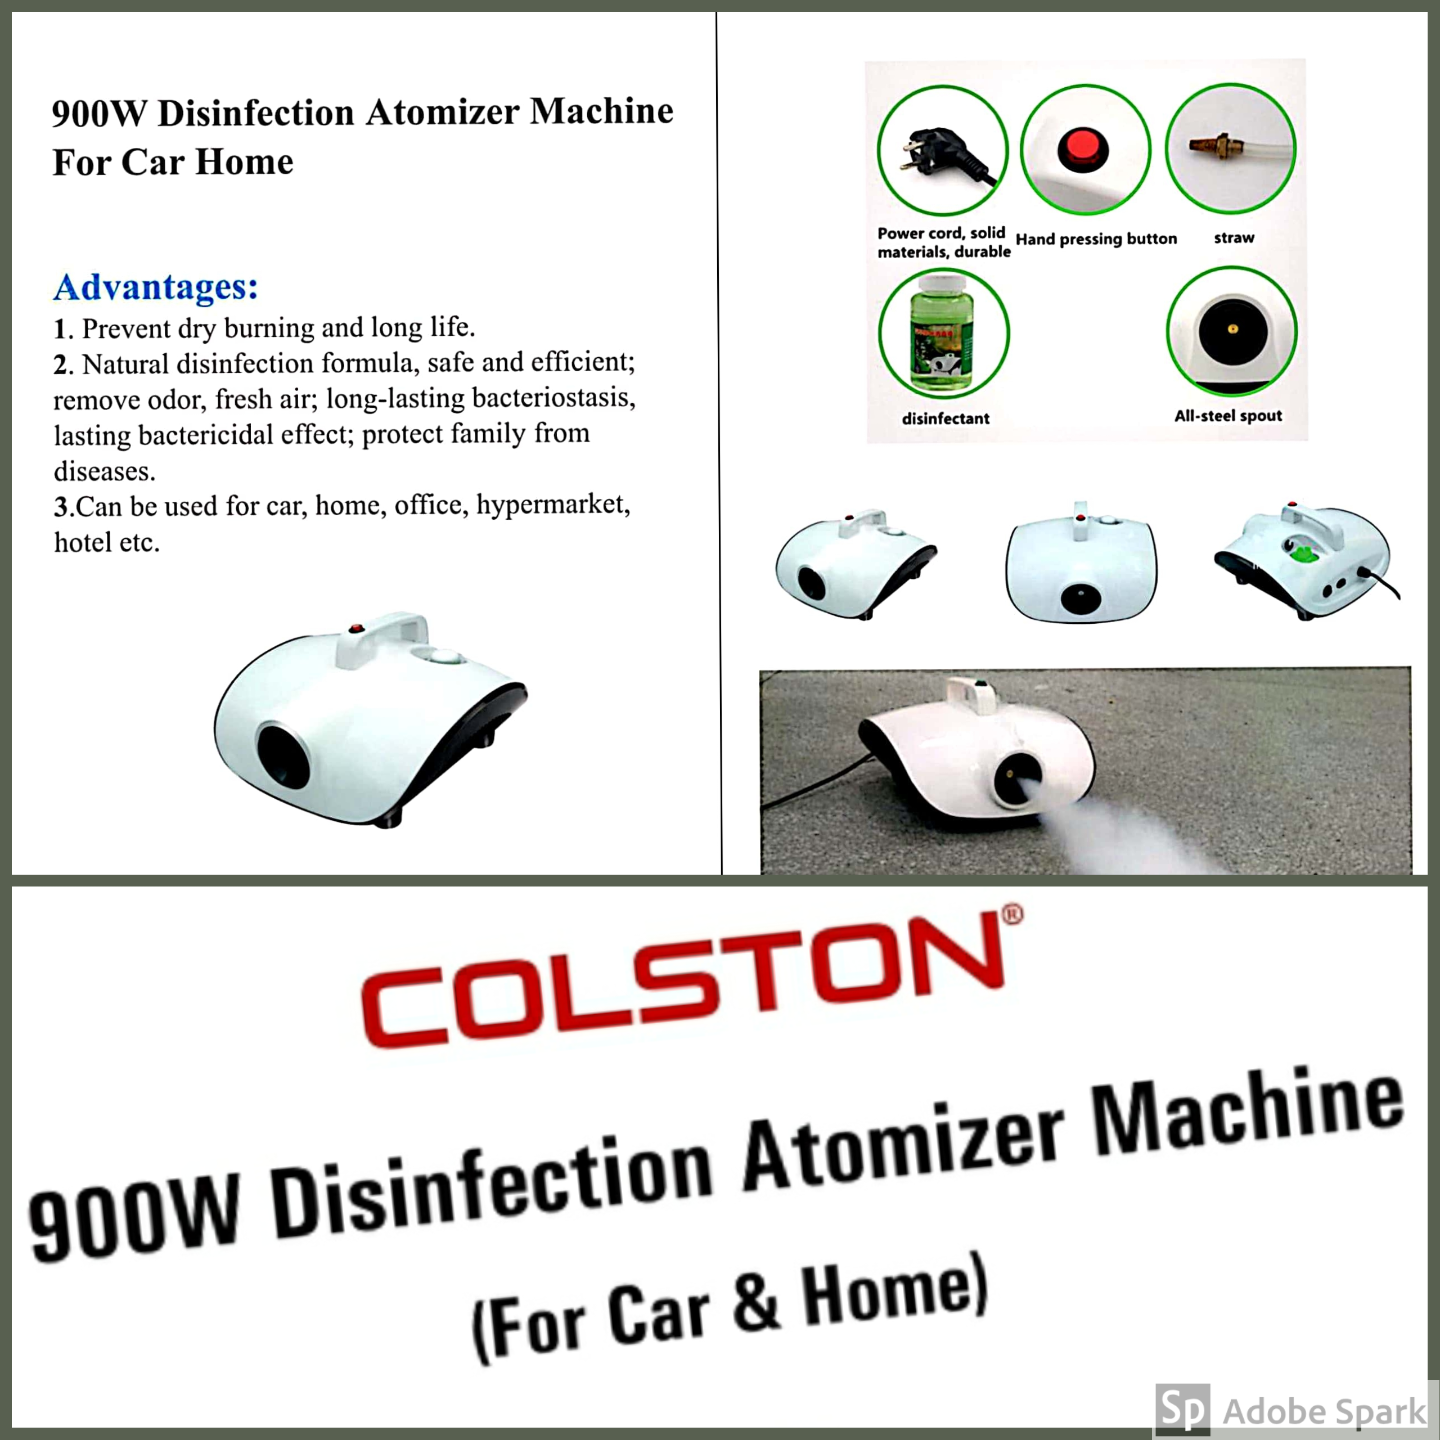 Colston Disinfection Atomiser Machine